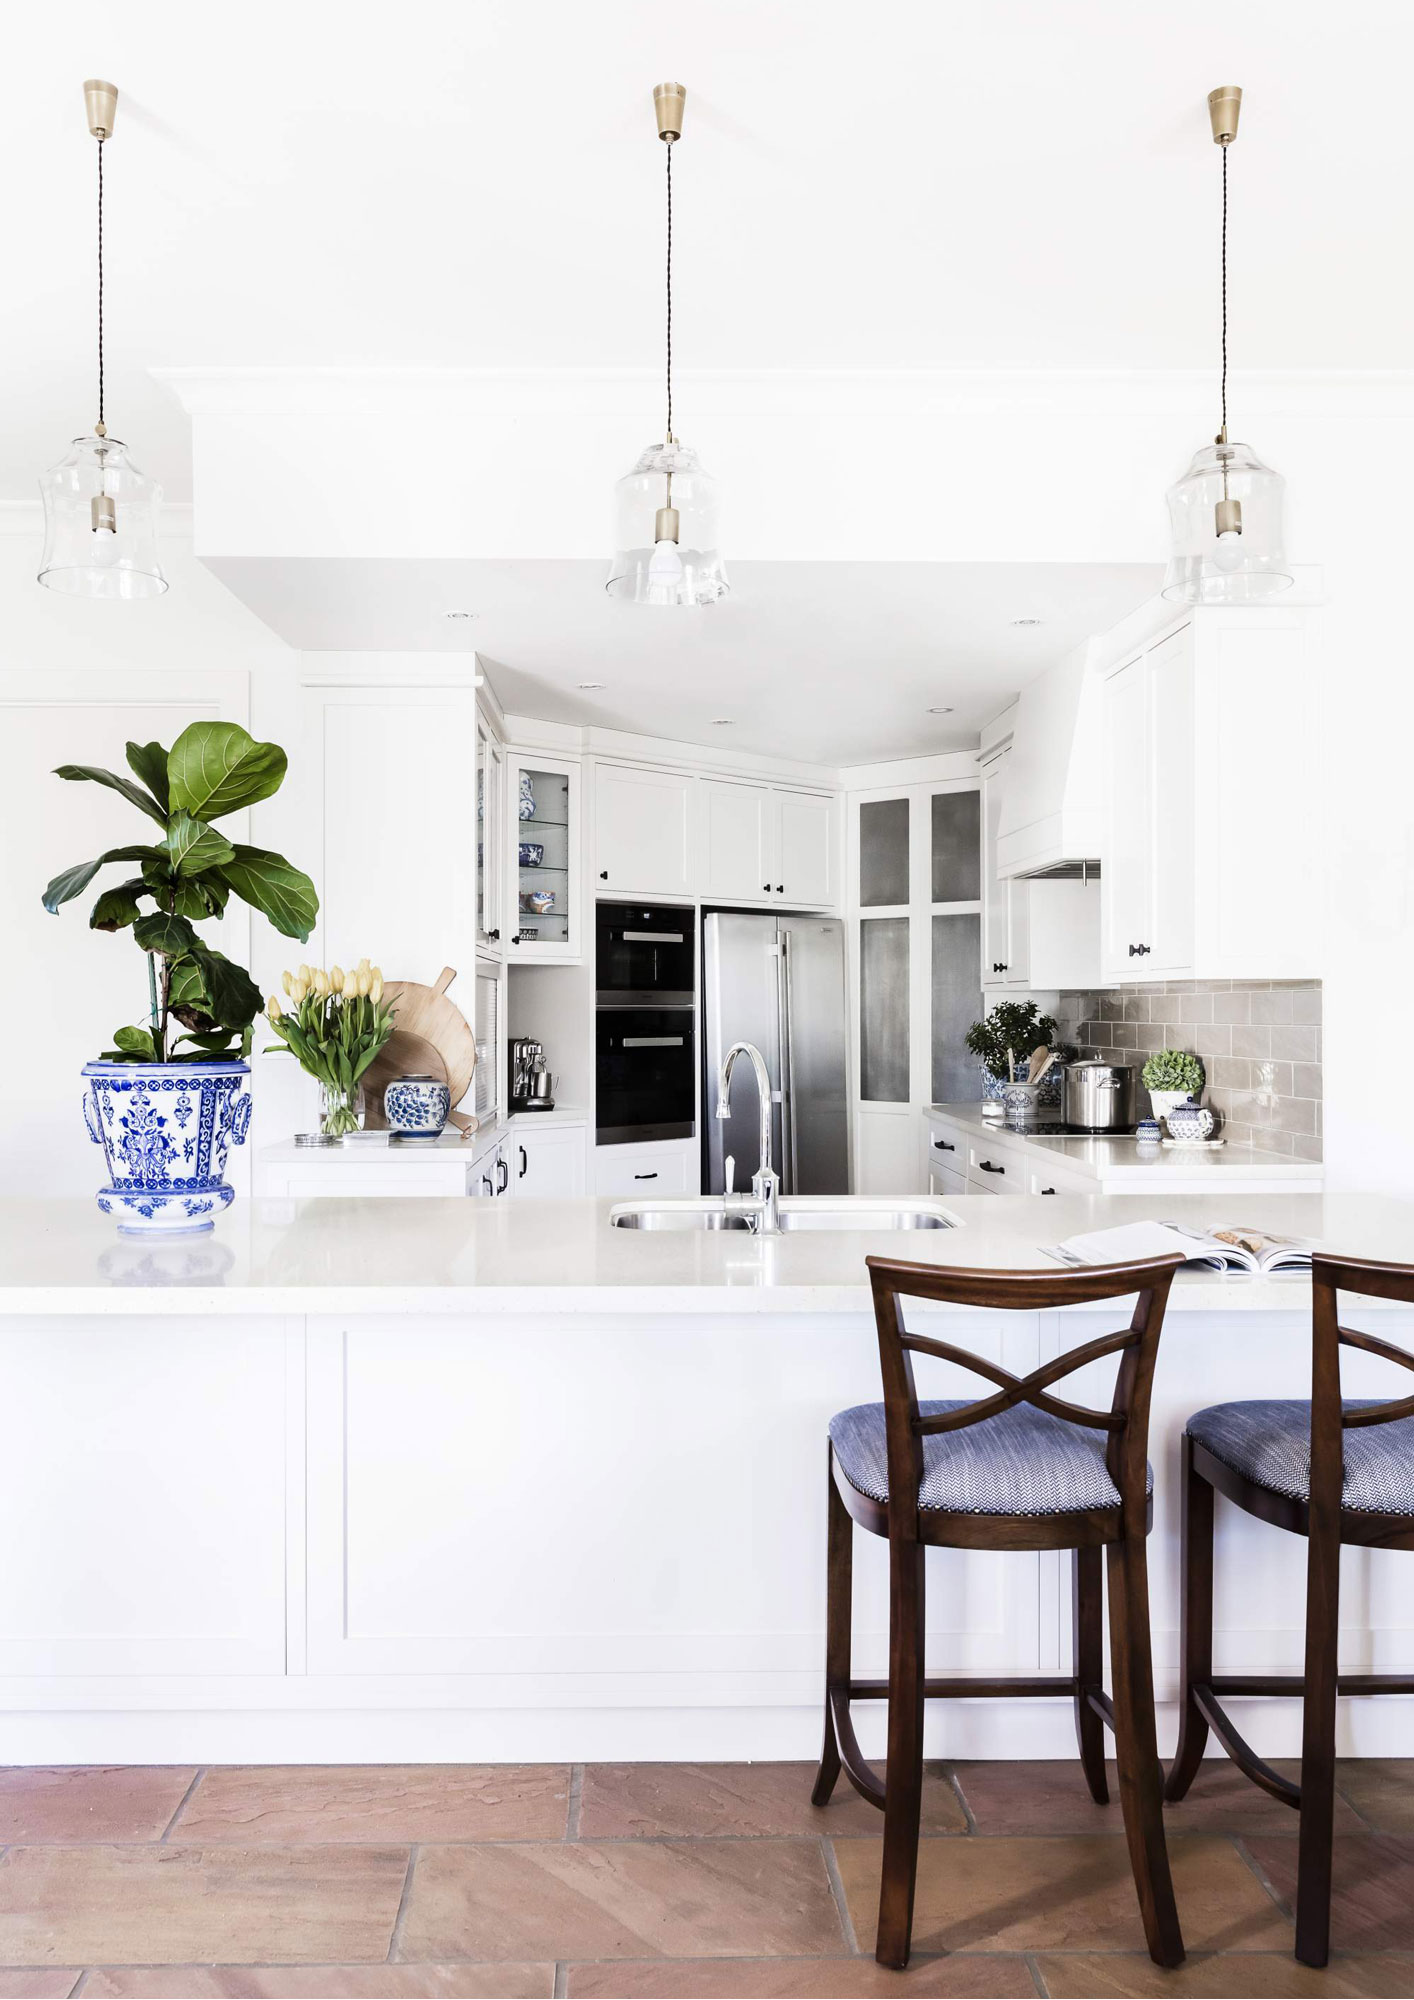 canberra interior design organiser build projects kitchen renovation white beautiful classic design